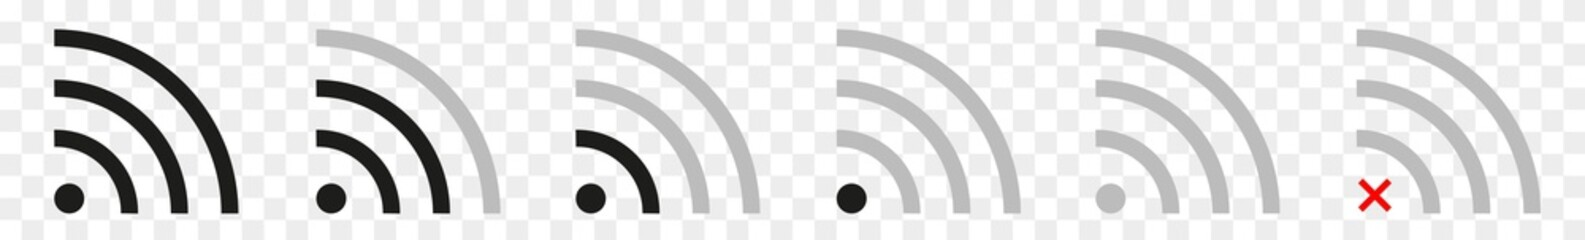 Wireless | Internet Connection | Signal Icon | Isolated Transparent